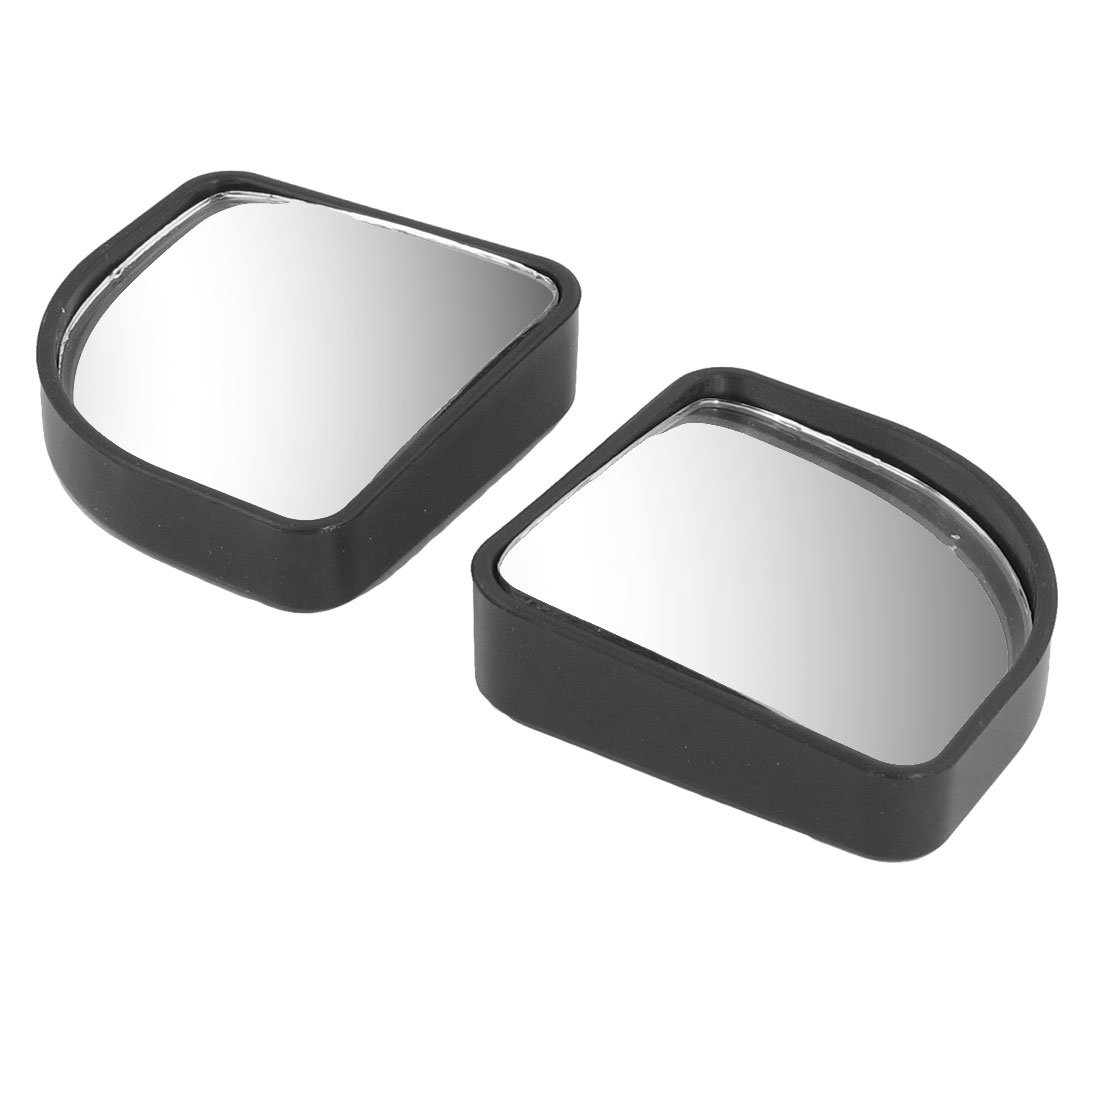 2 Pcs Car Black Wide Angle Fanshaped Rear View Blind Spot Mirror 2''